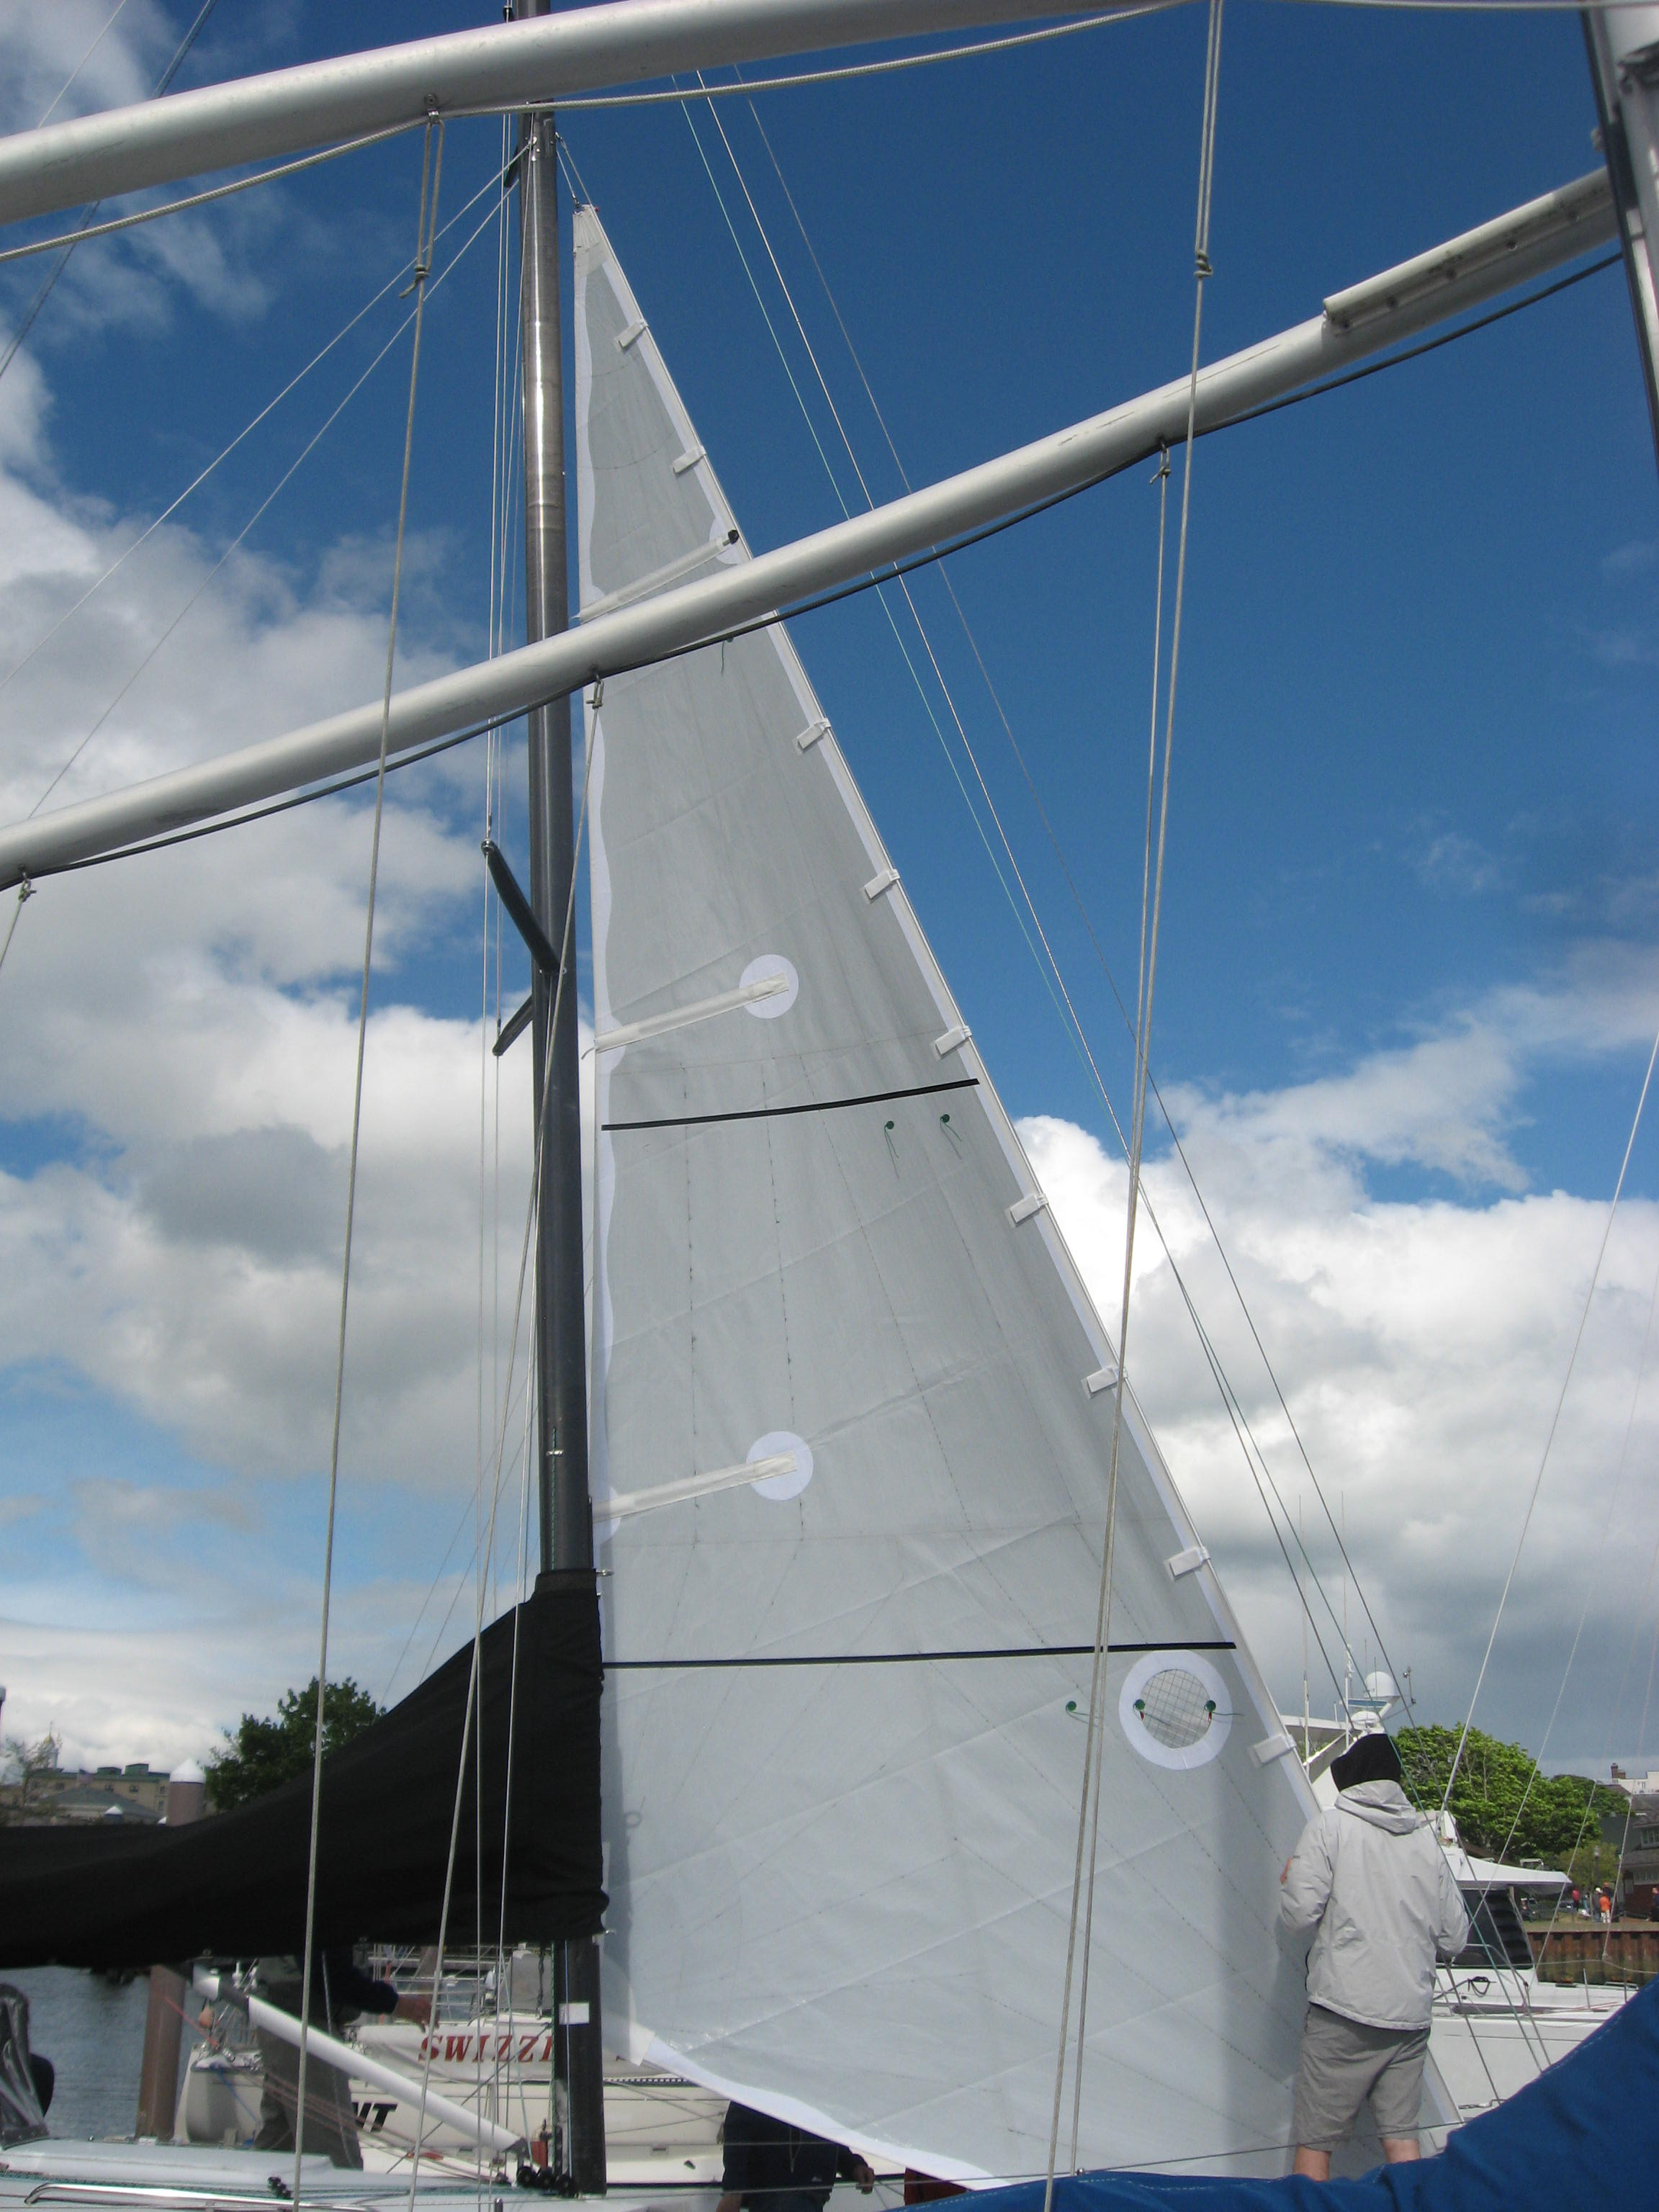 Laminated staysail on a 30 footer.